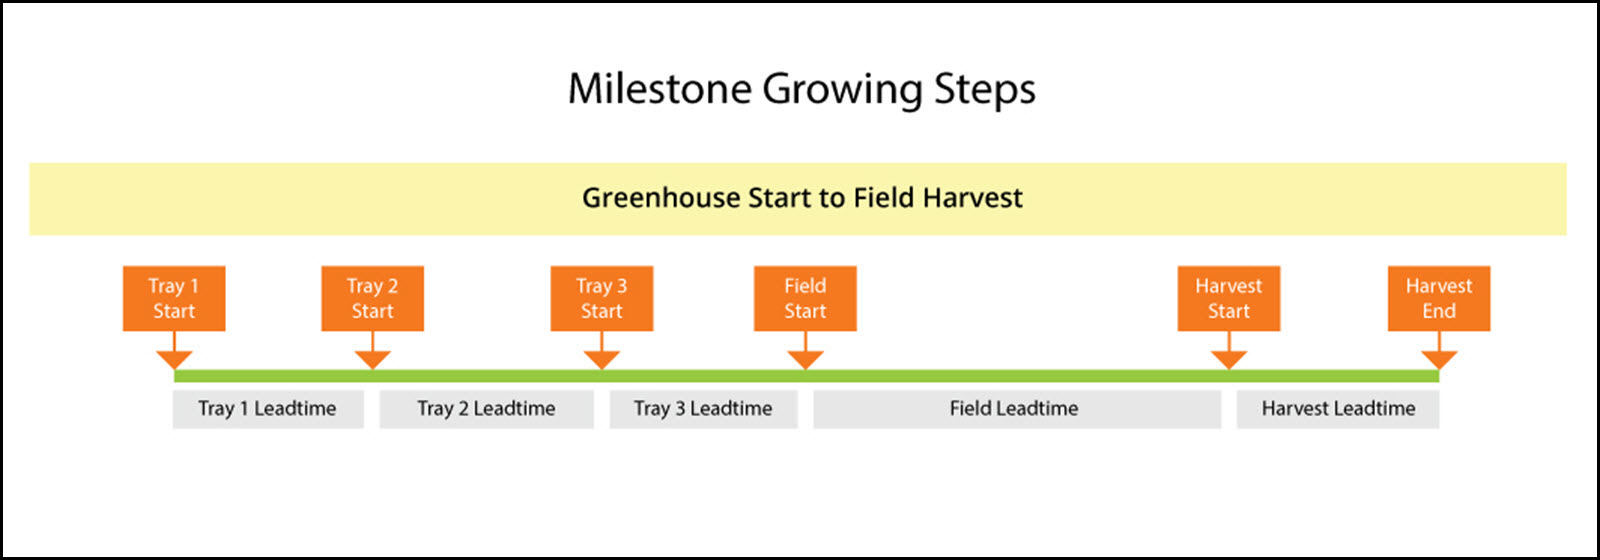 Here is an example of our Market Farming Software, Farm Production Manager's, Milestone Growing steps; it shows potential milestones for direct greenhouse start to field harvest process. Milestone Growing steps simplify scheduling.